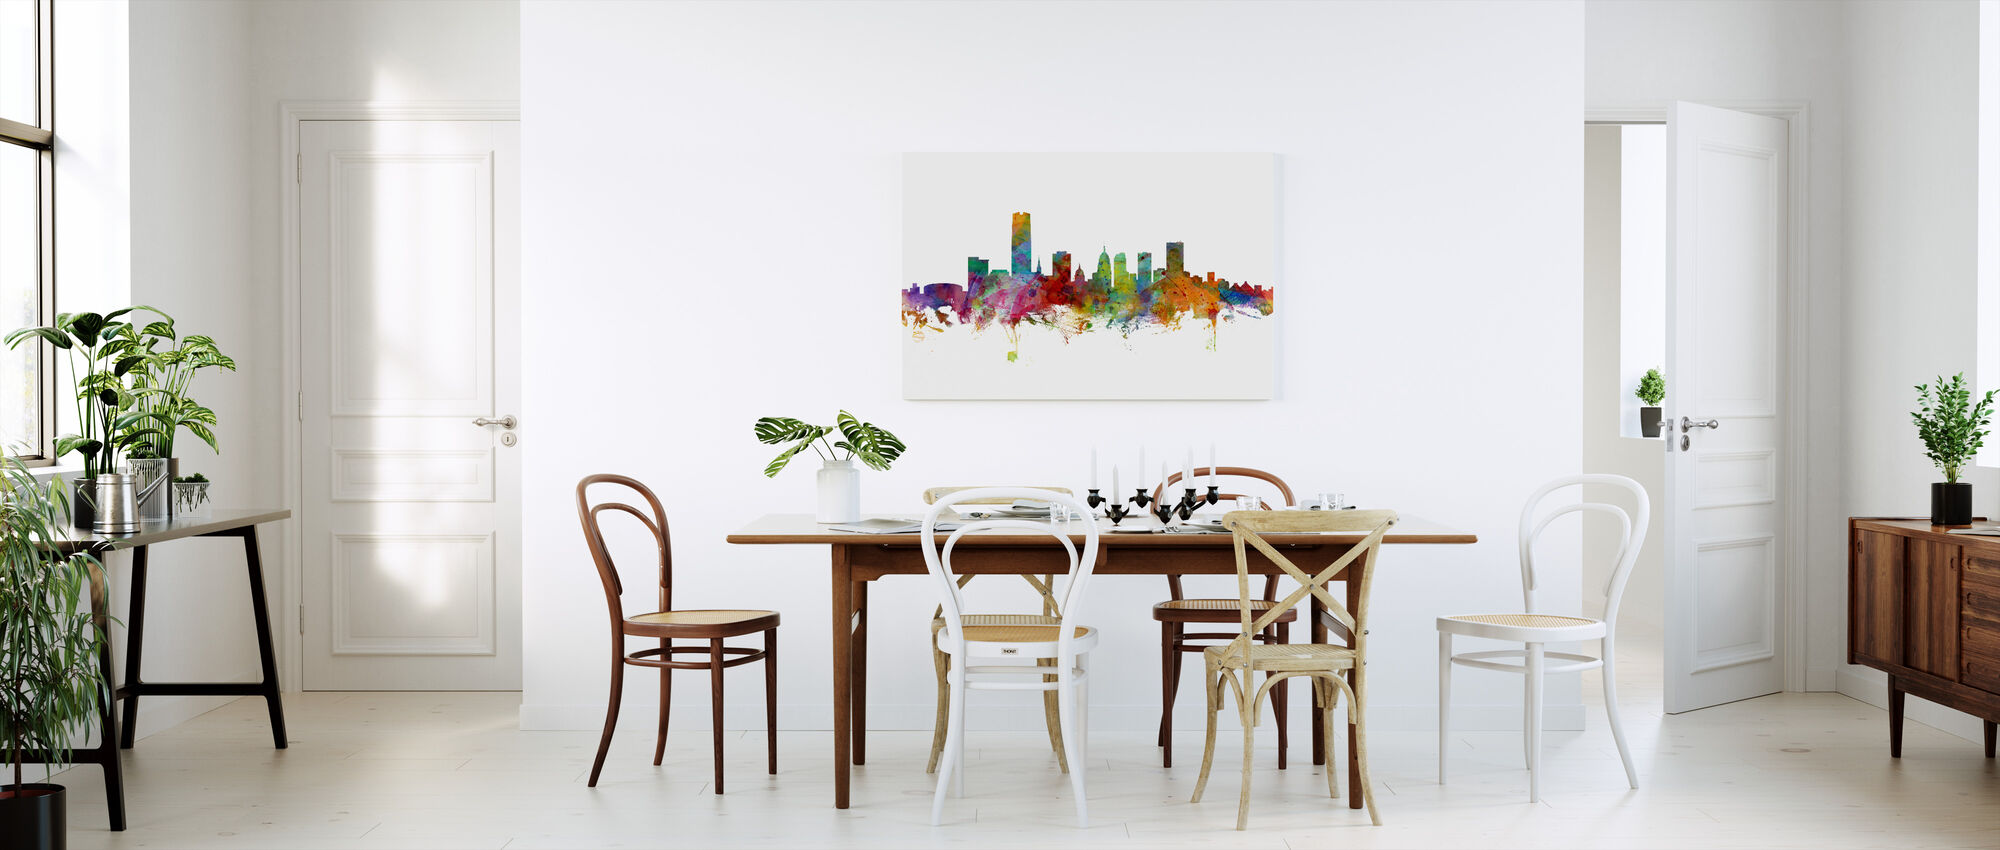 Oklahoma City Skyline - Canvas print - Kitchen